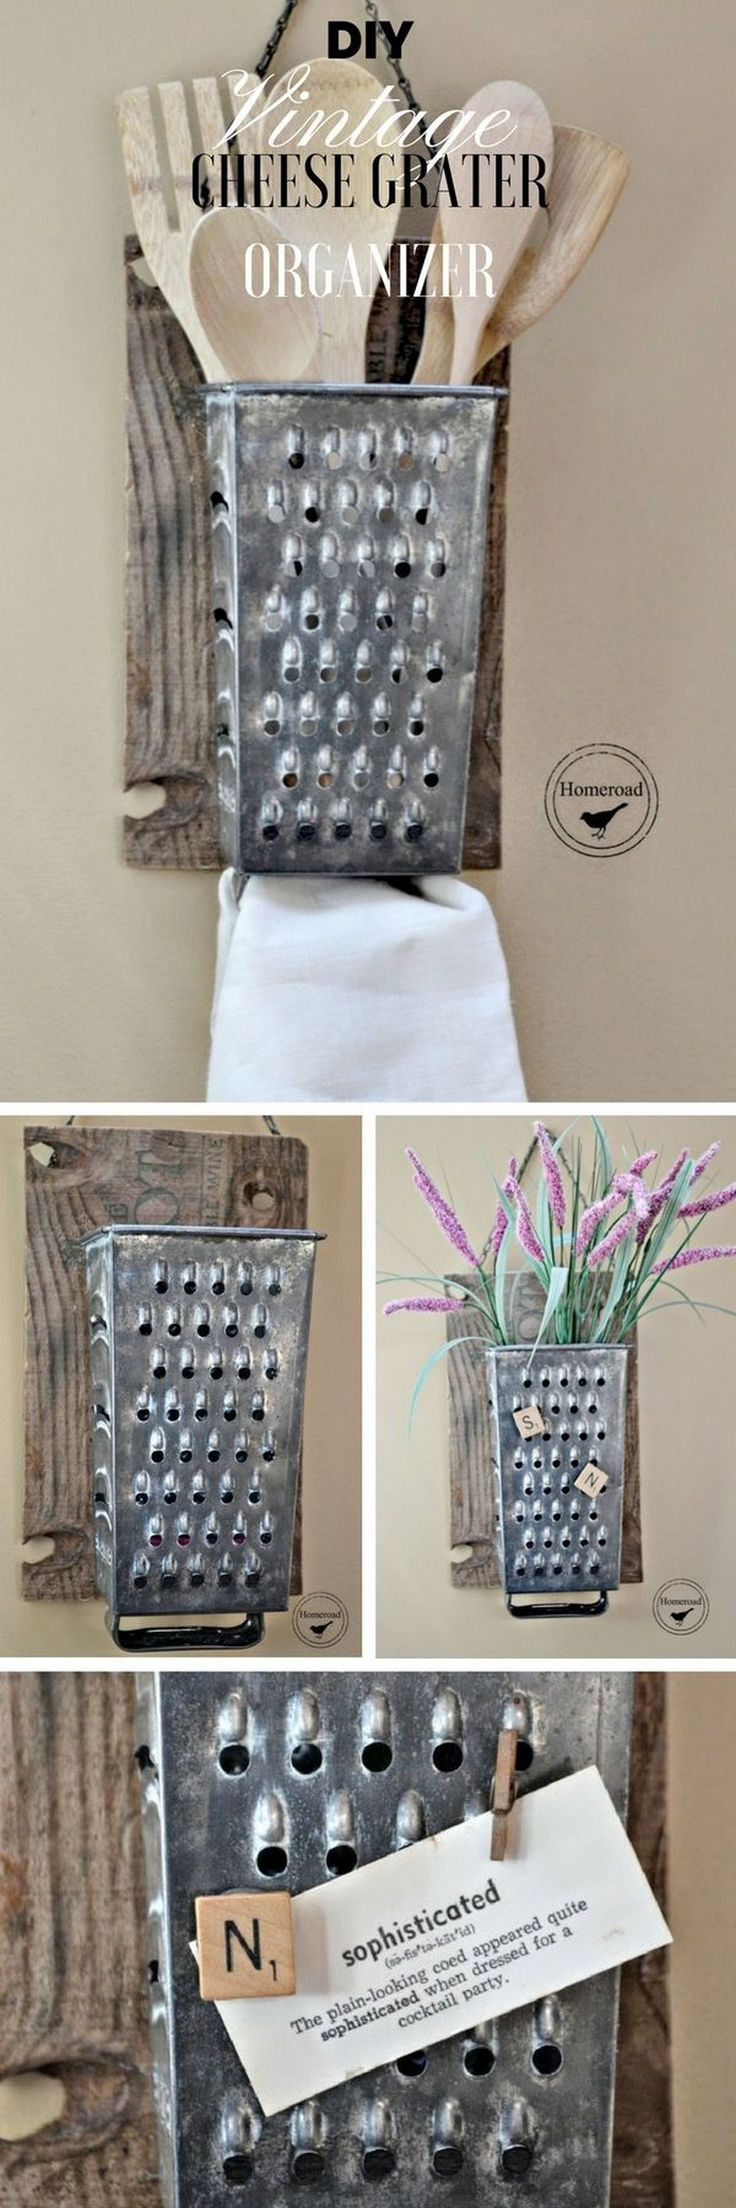 25 best ideas about Rustic home decorating on Pinterest  Country homes decor Country decor